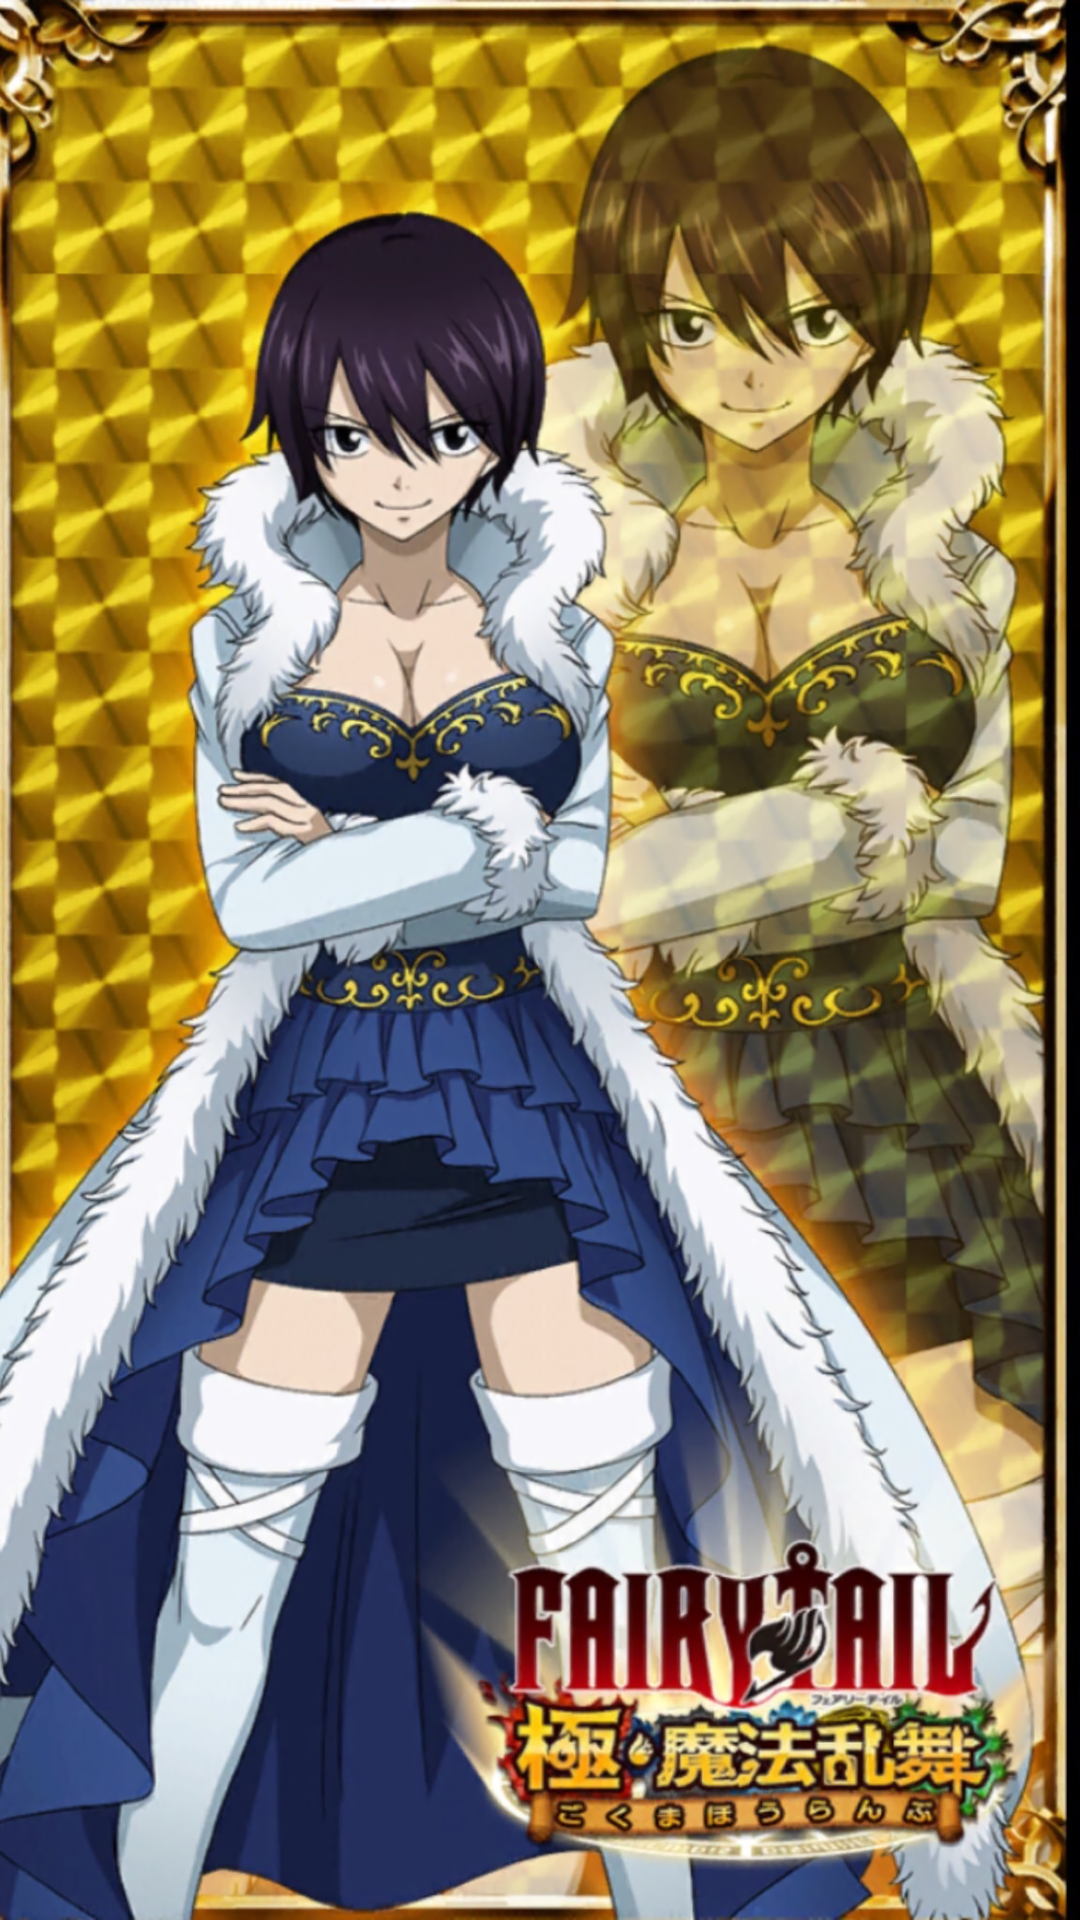 Fairy Tail: The Galaxy Dragon Slayers - Chapter 7: Date with Scarlet and Ice Queen